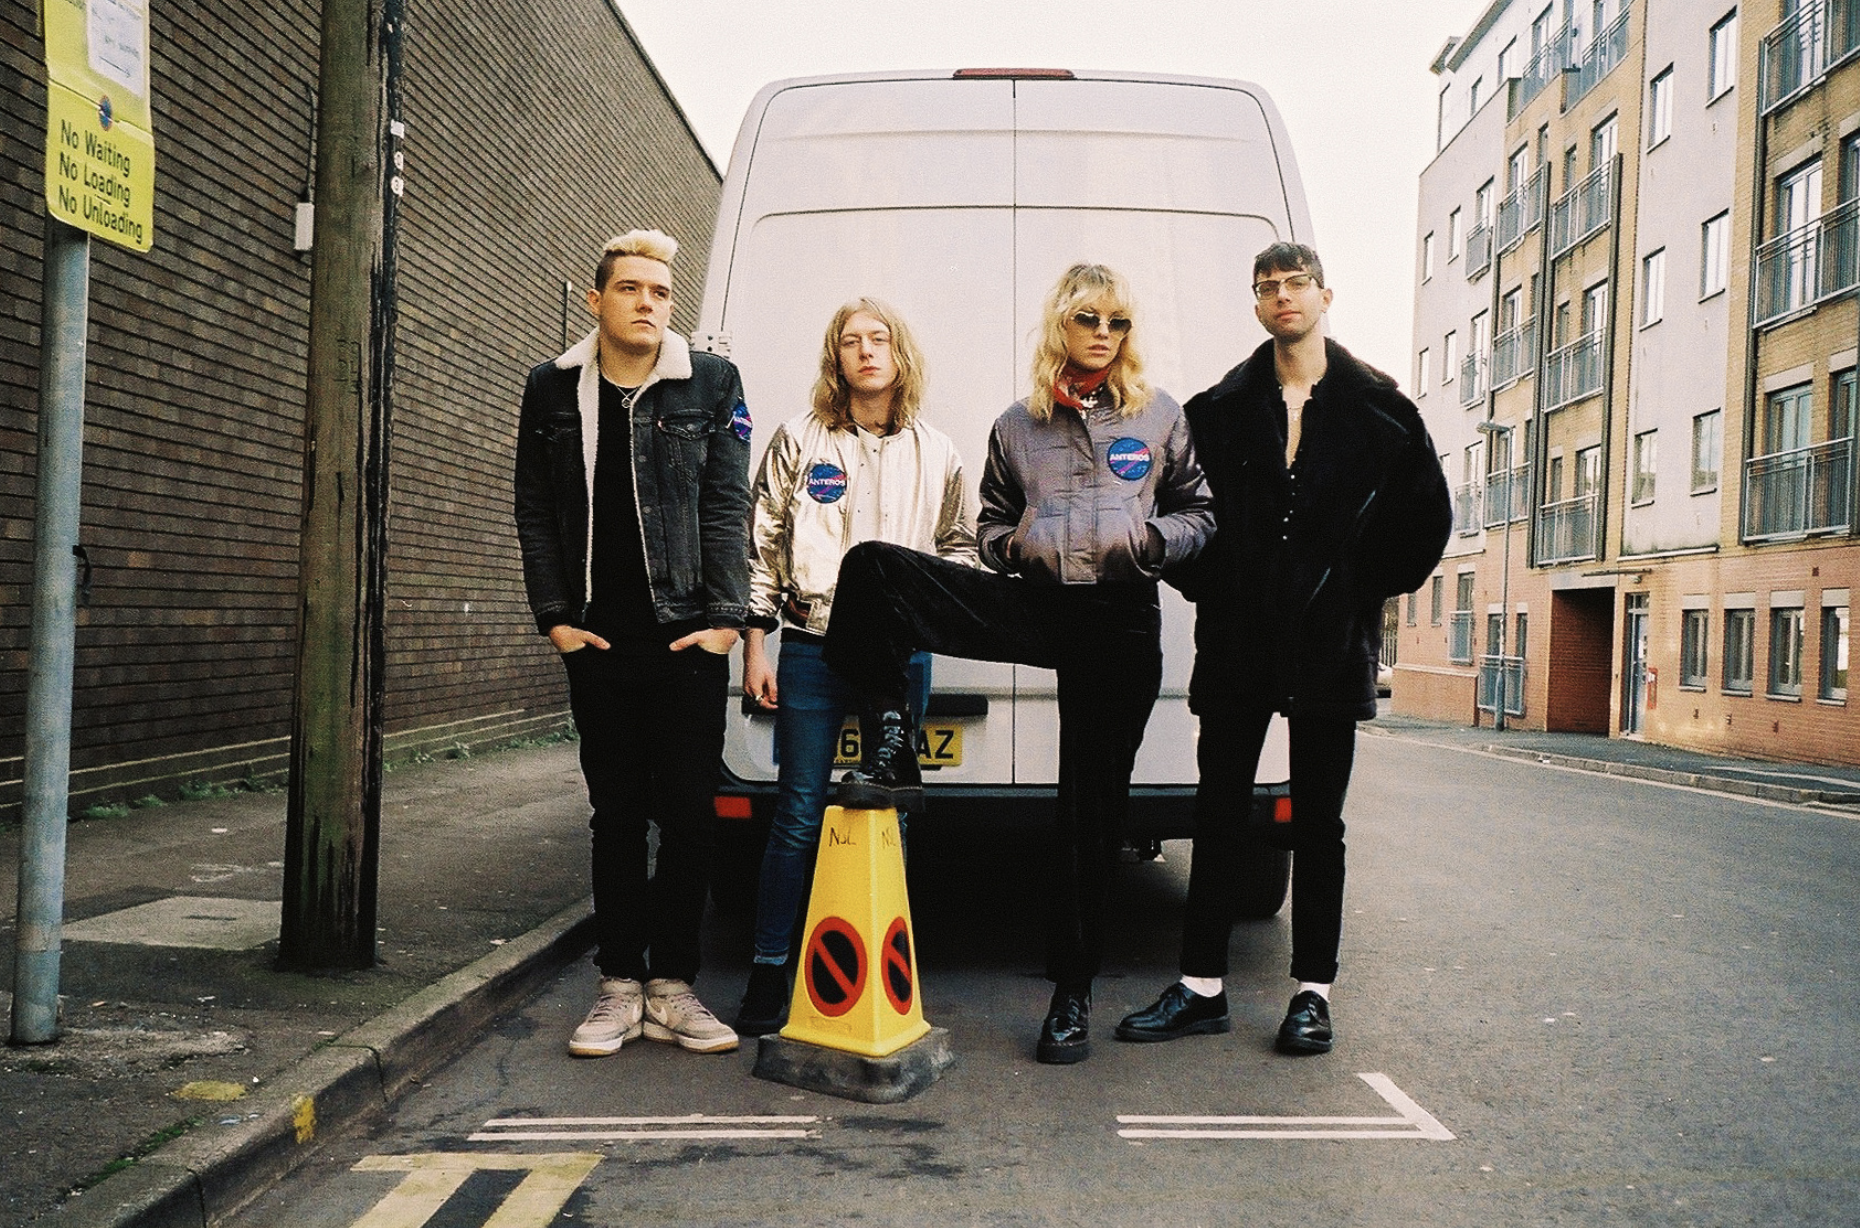 Anteros by Phoebe Fox (@ shotbyphox )